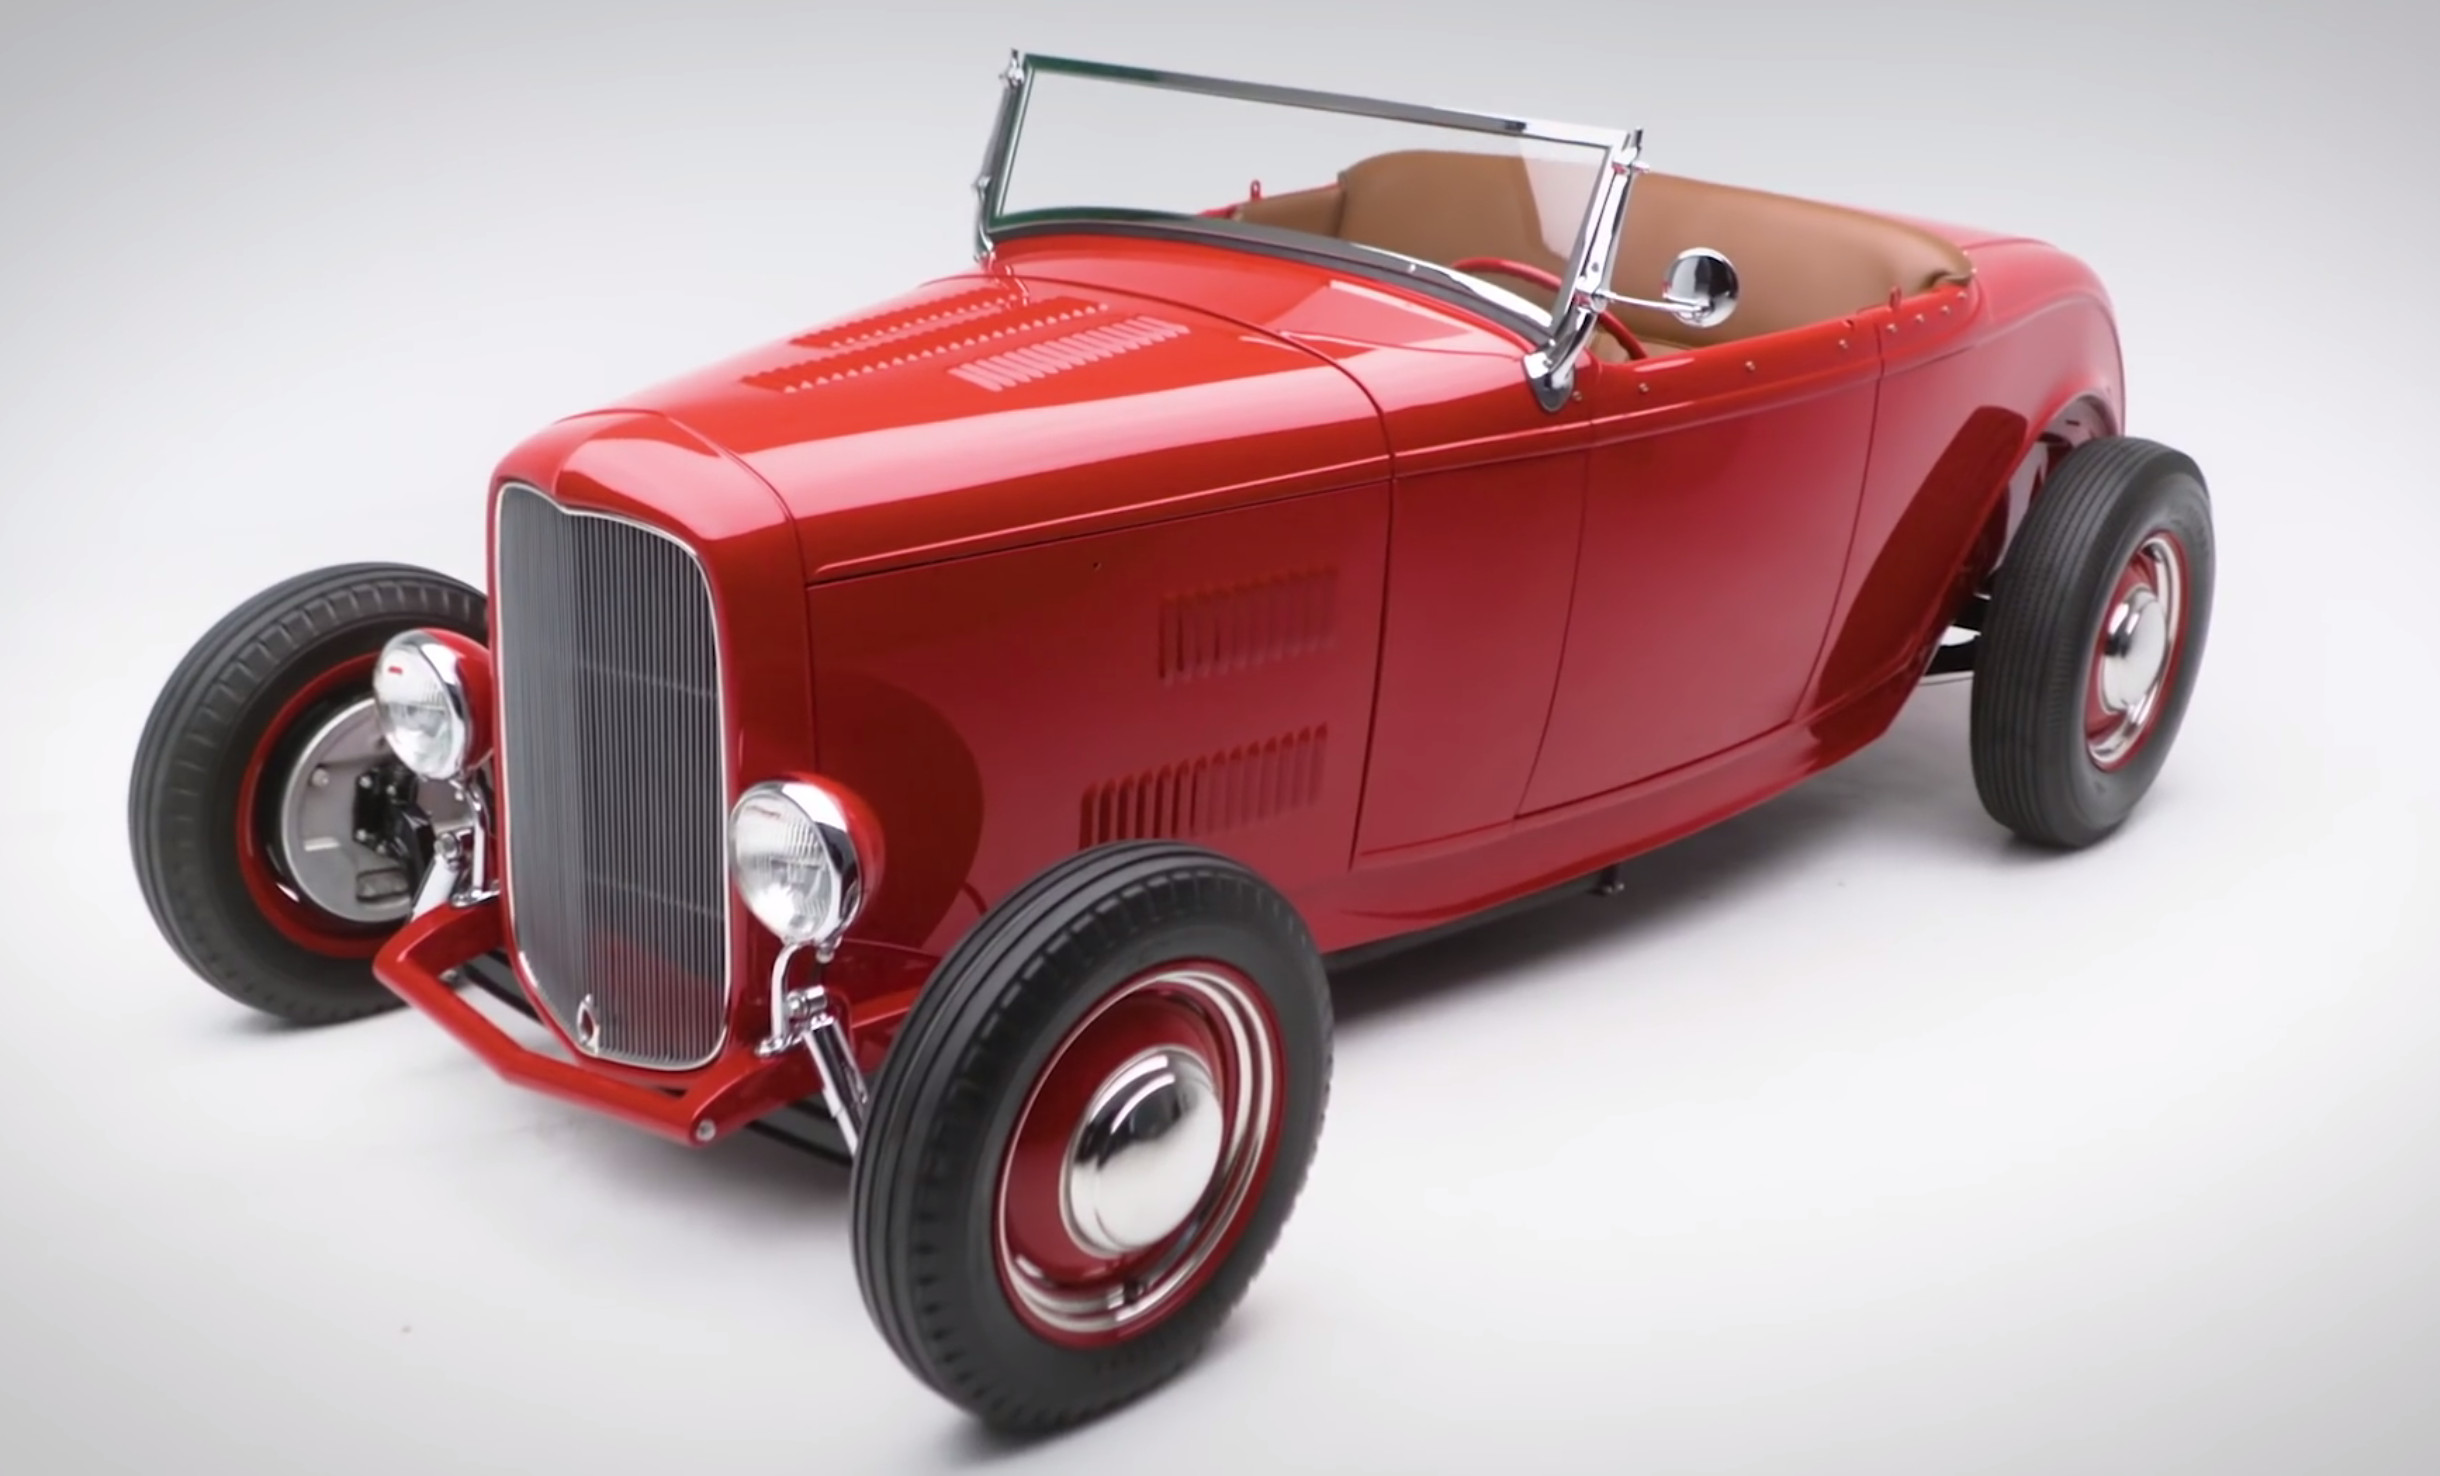 Documentary details iconic McGee/Scritchfield 1932 Ford roadster